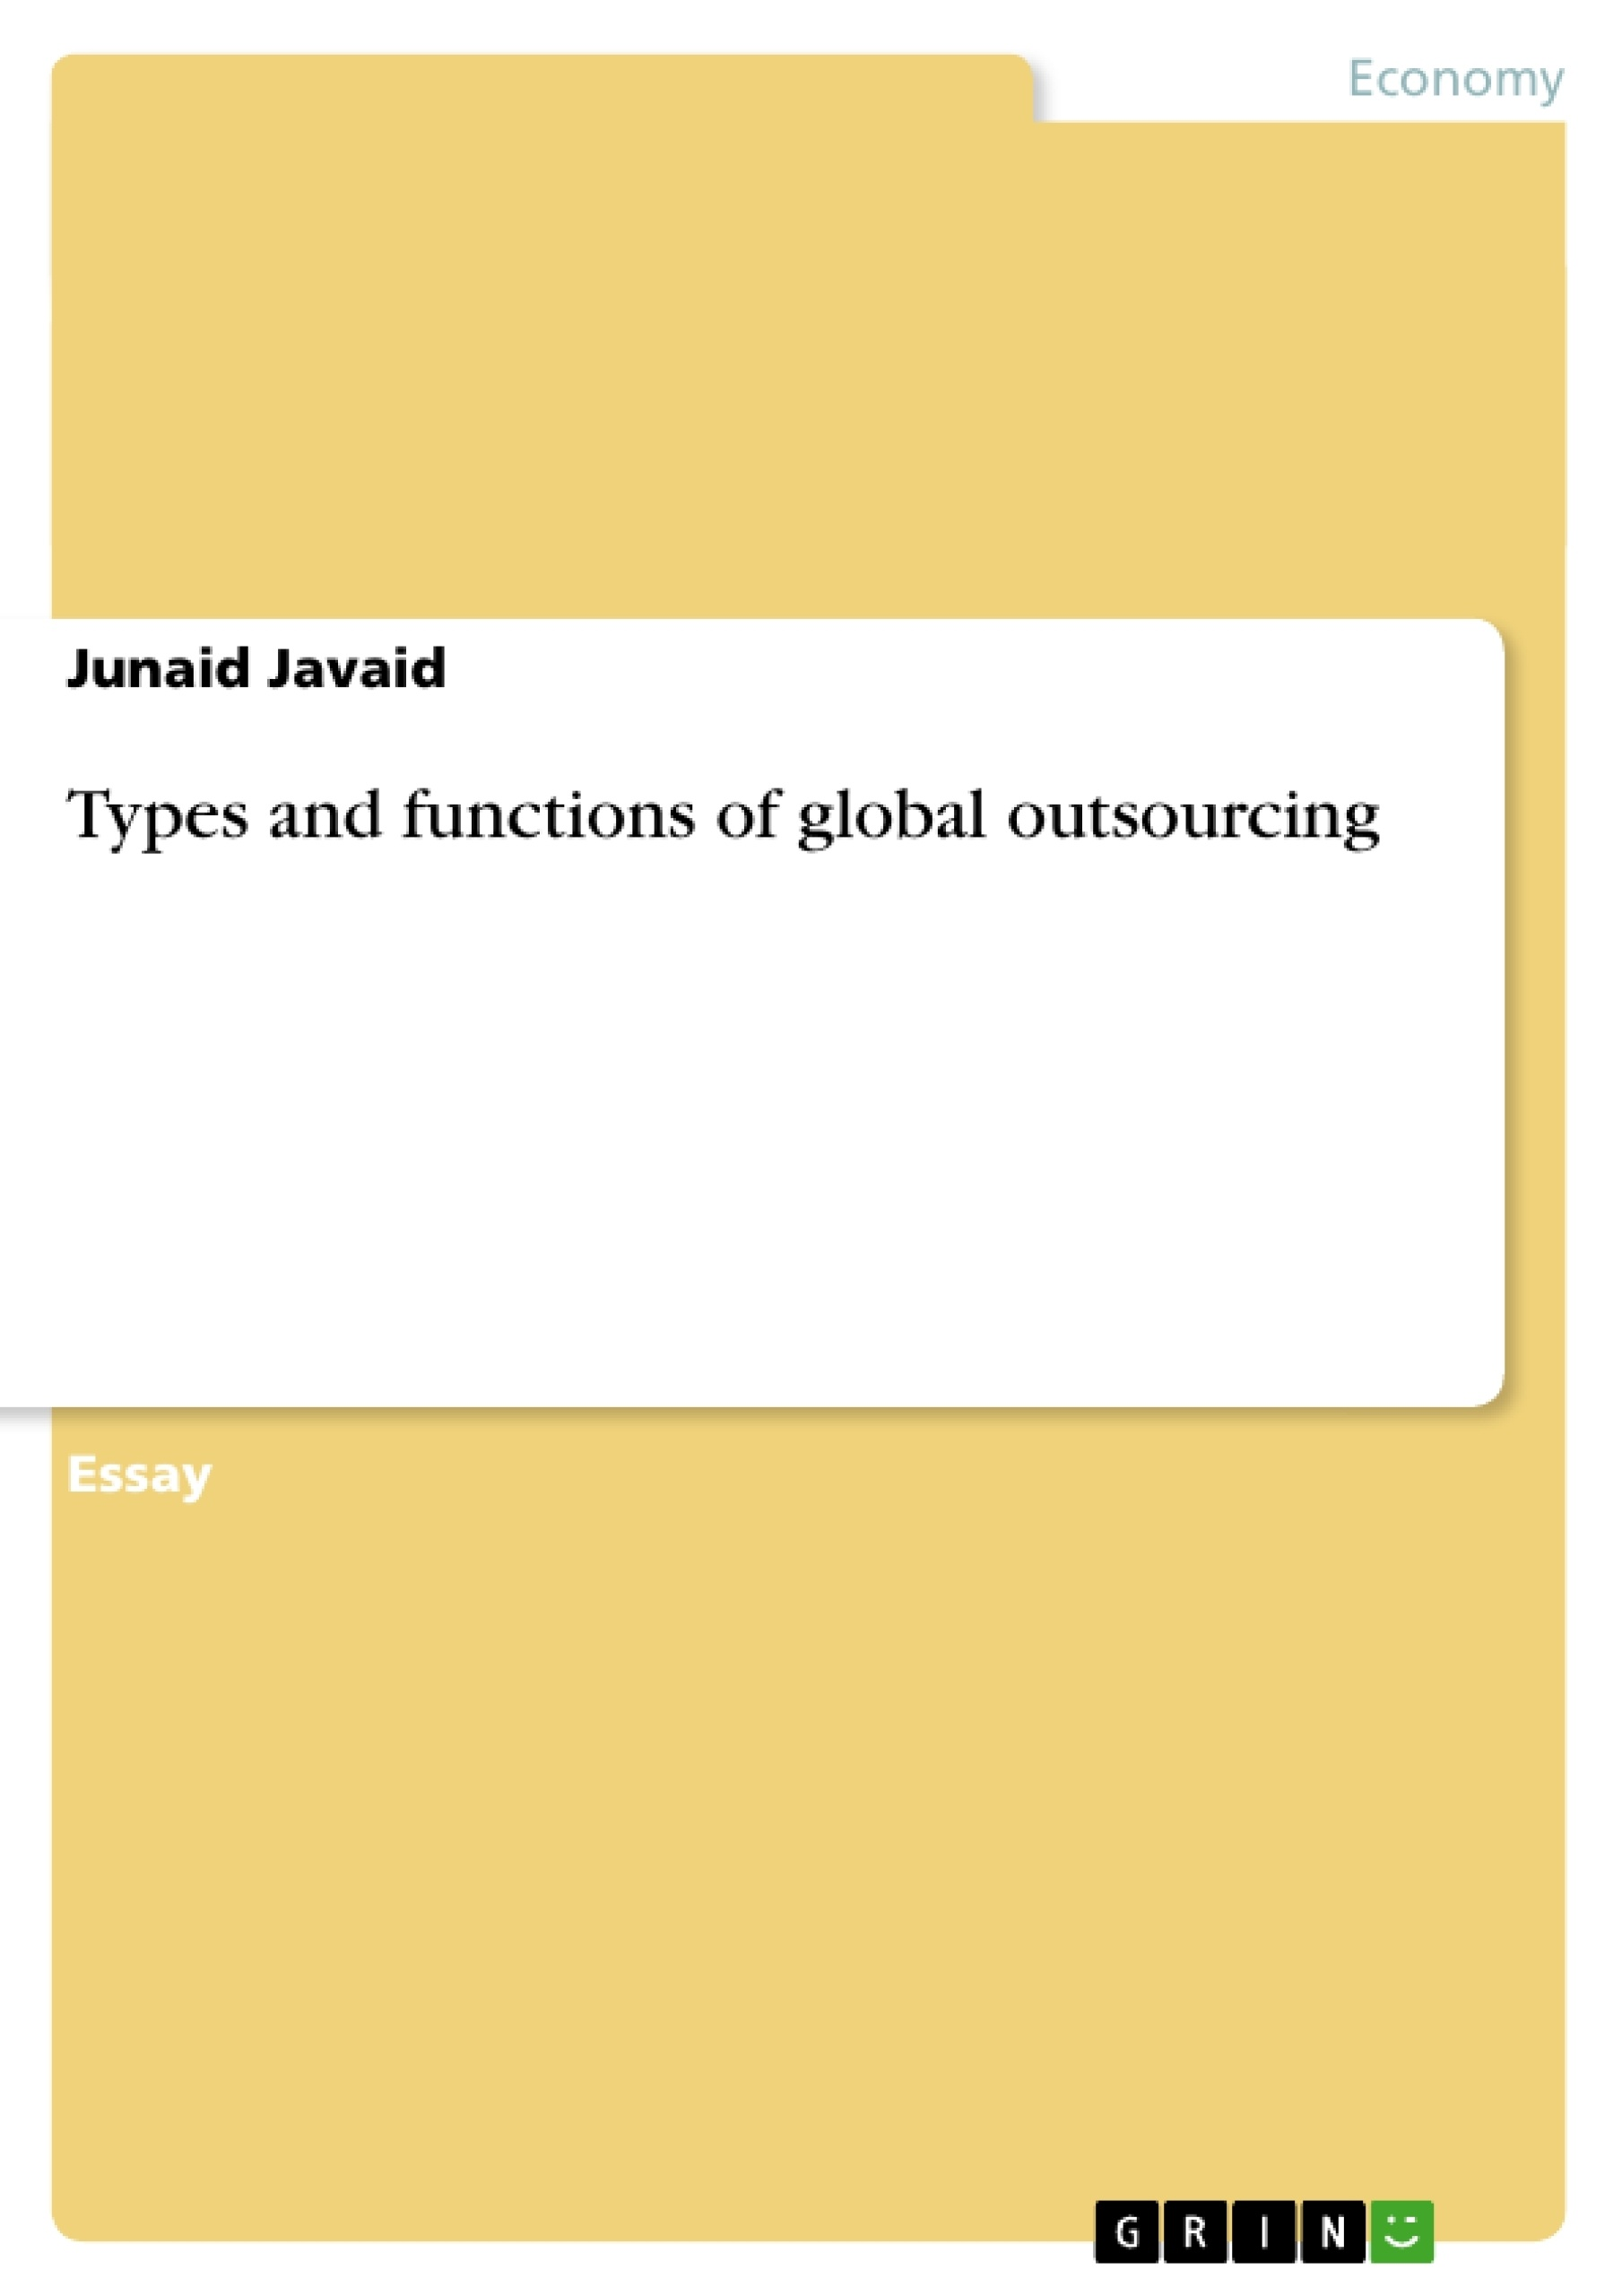 Title: Types and functions of global outsourcing